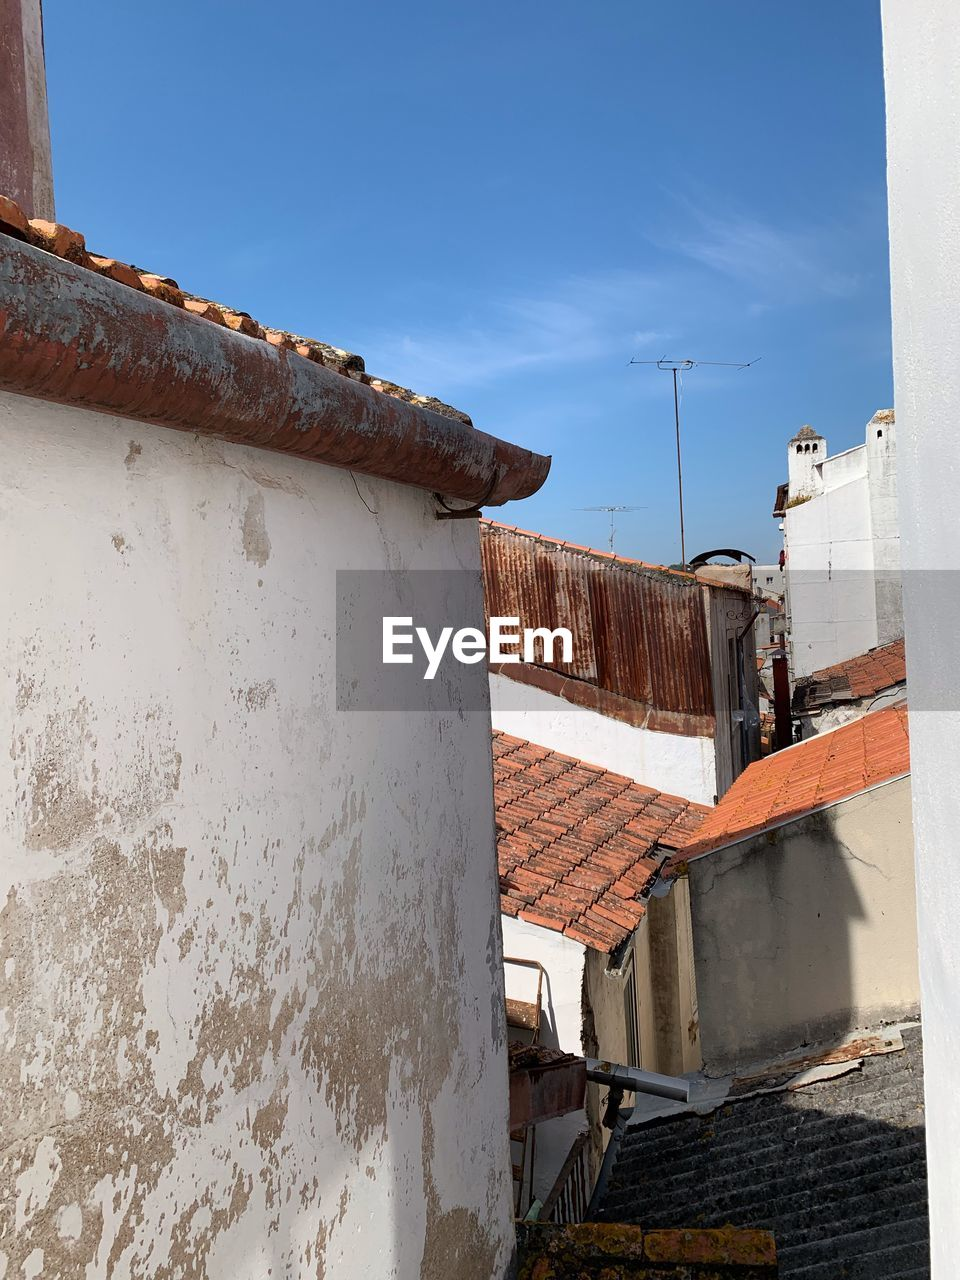 architecture, built structure, building exterior, sky, building, nature, day, blue, no people, residential district, house, roof, clear sky, sunlight, old, outdoors, low angle view, window, metal, rusty, roof tile